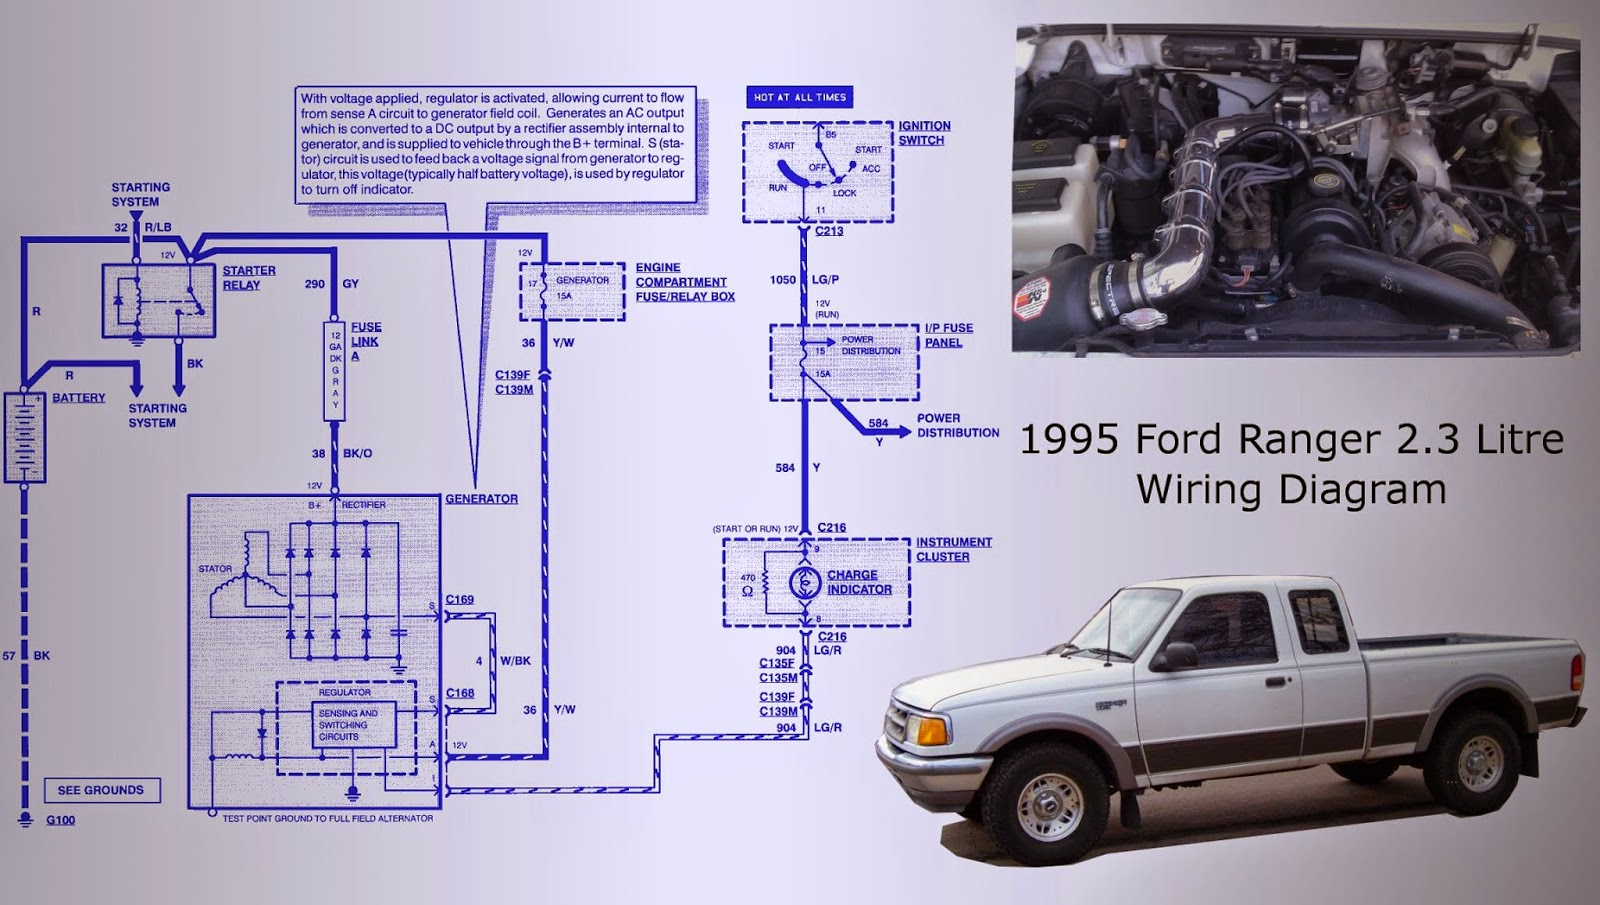 1995 ford ranger 2 3 wiring diagram schedule network project management litre auto